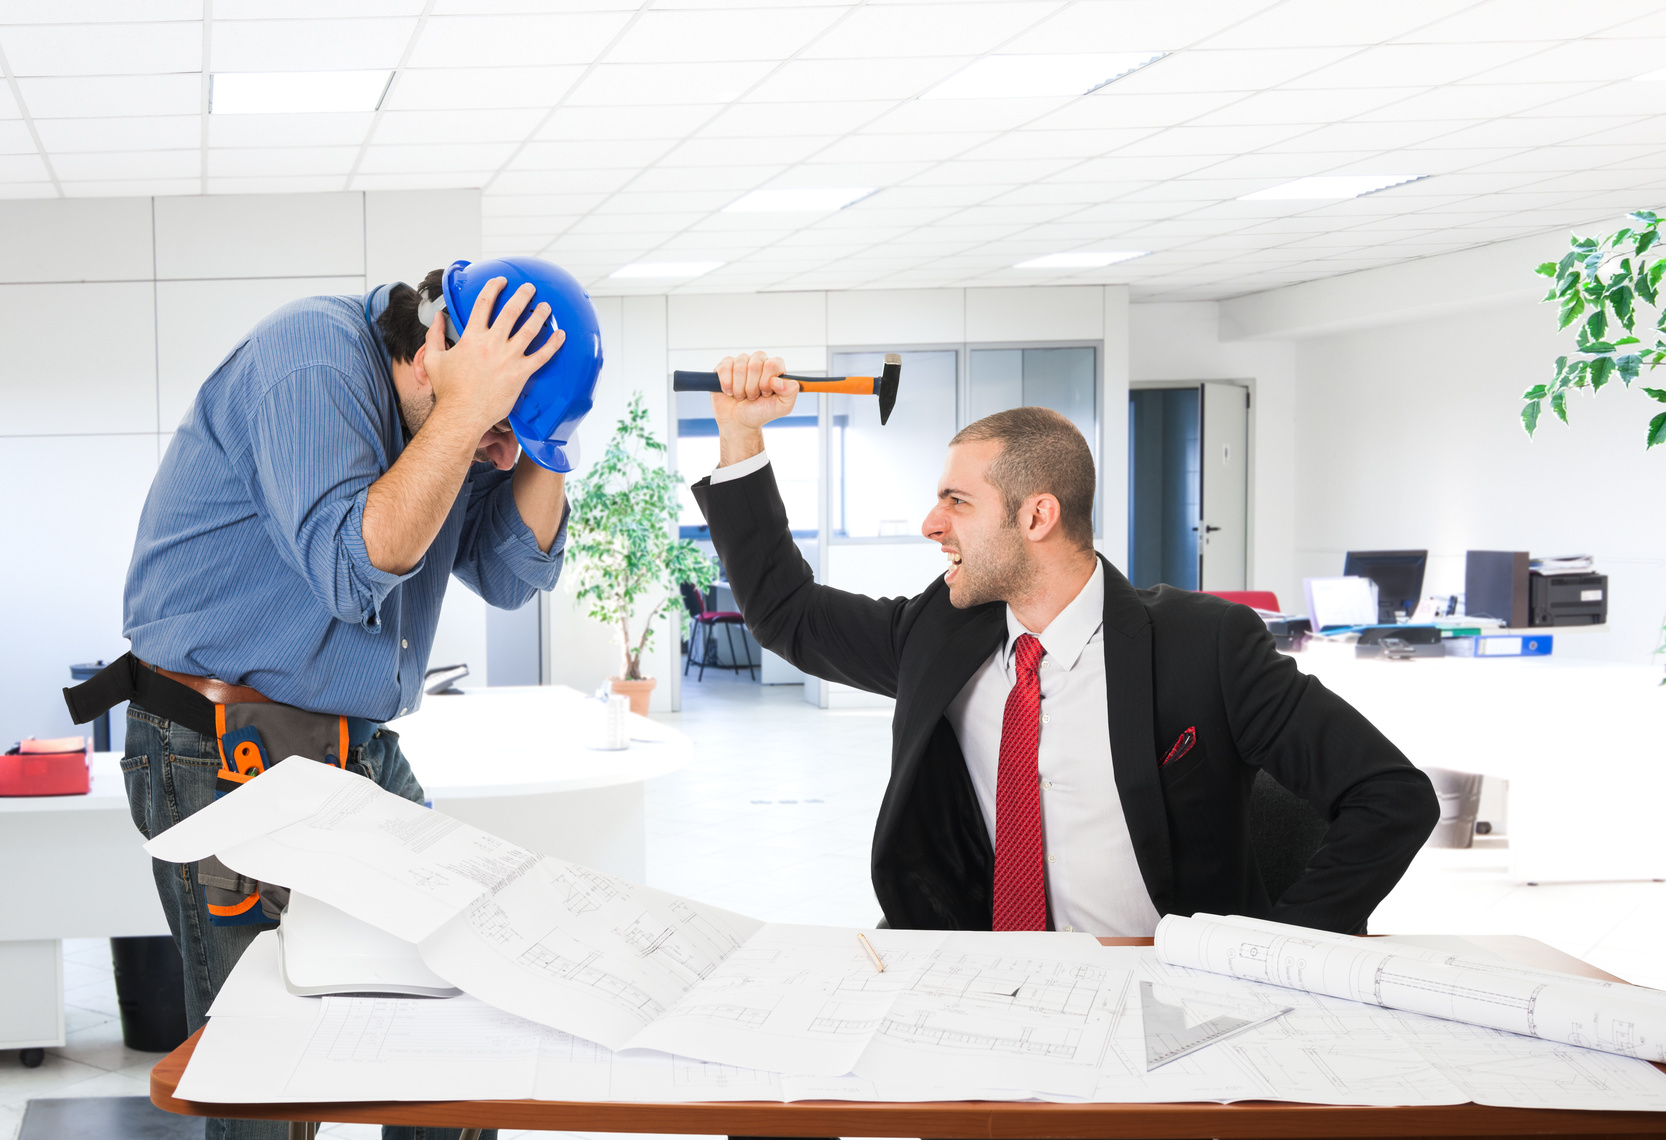 Funny portrait of an angry boss attacking a worker